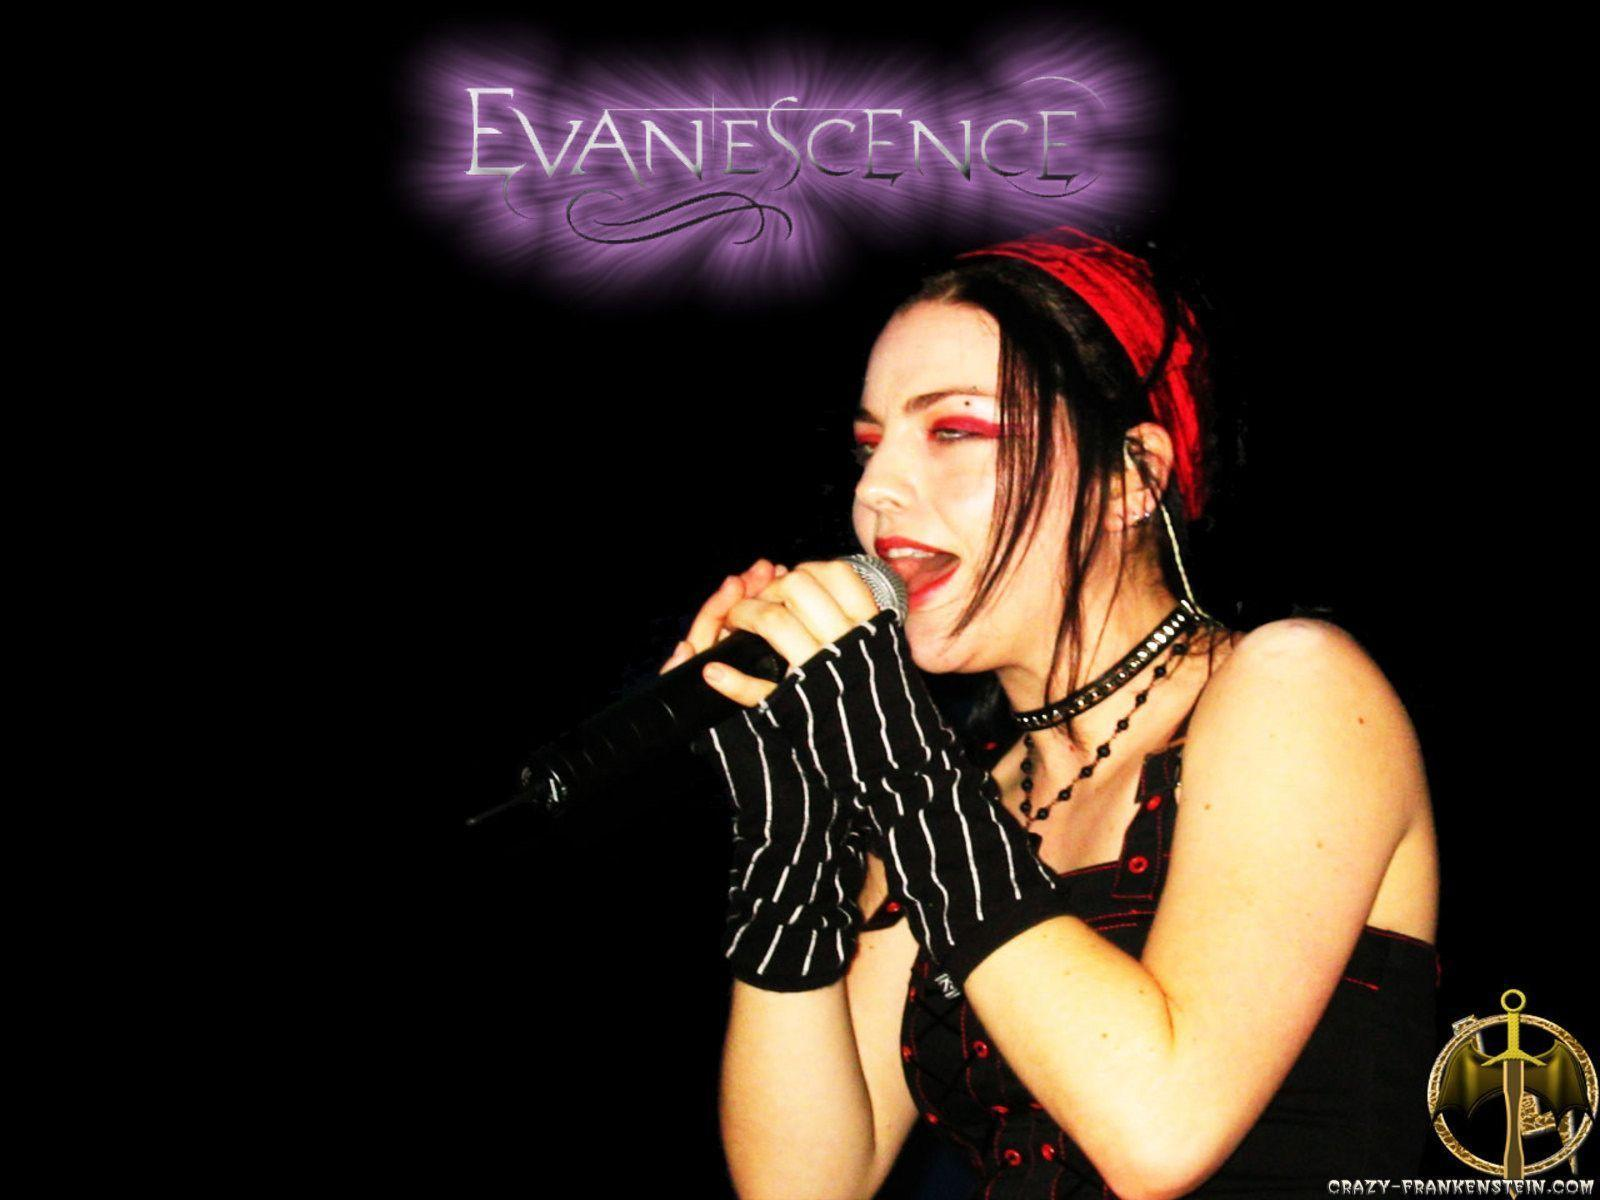 Evanescence 2016 Wallpapers 1600x1200